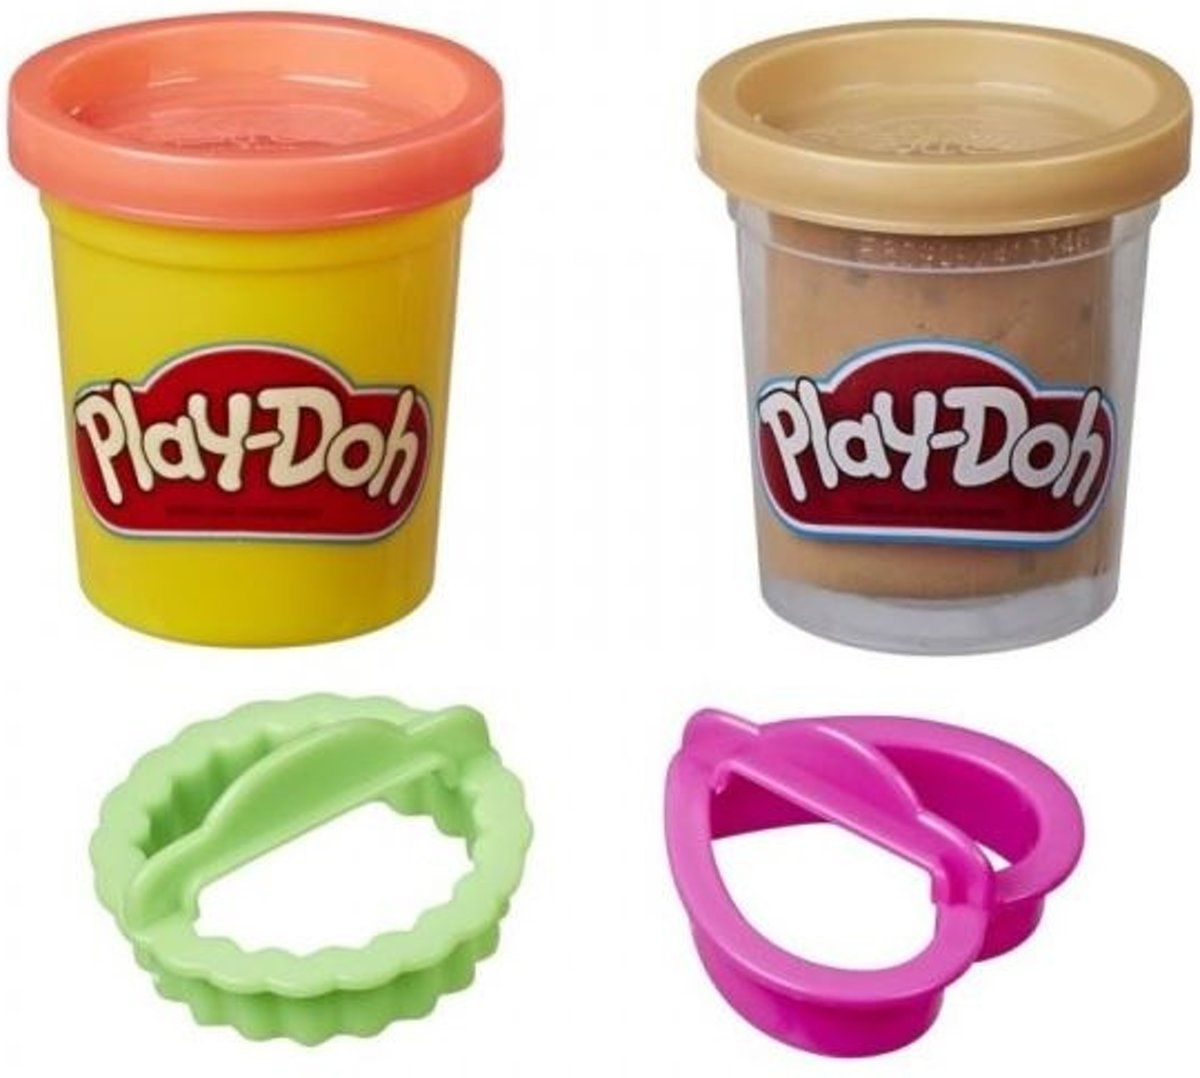 Play-doh Kitchen Creations Klei Junior Rood/bruin 4-delig